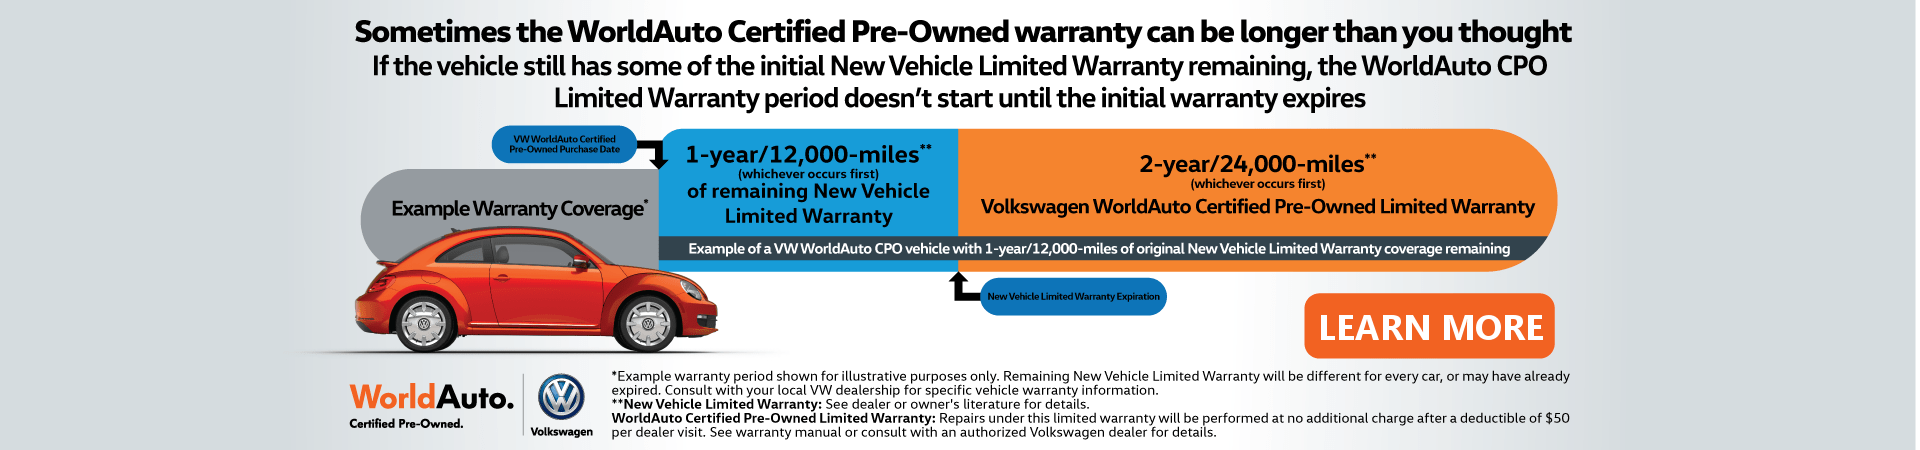 AutoTrader Certified Pre-Owned